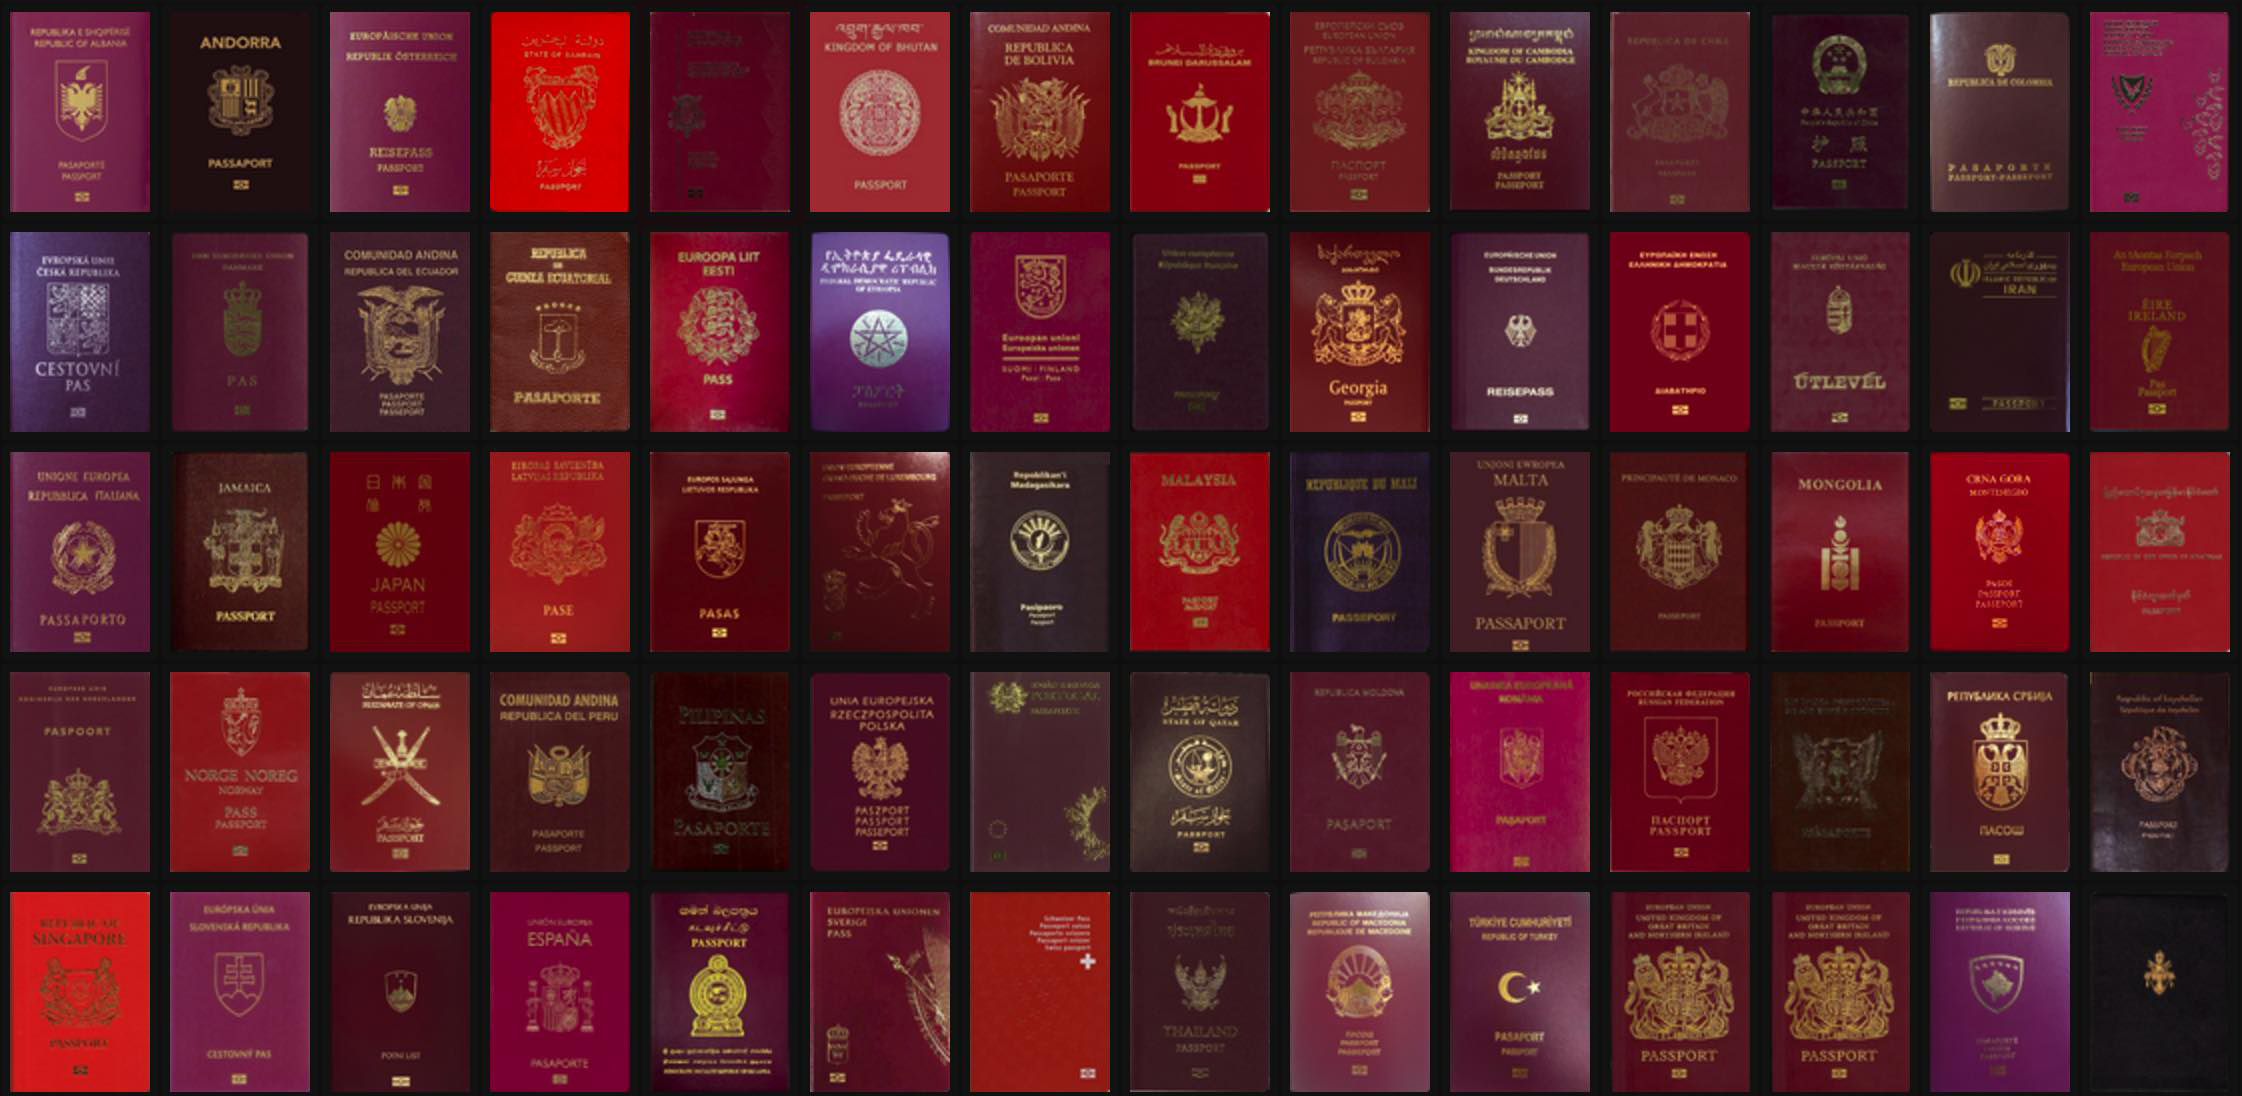 Fight the forgers with Rent4sure's smart solution to fake passports